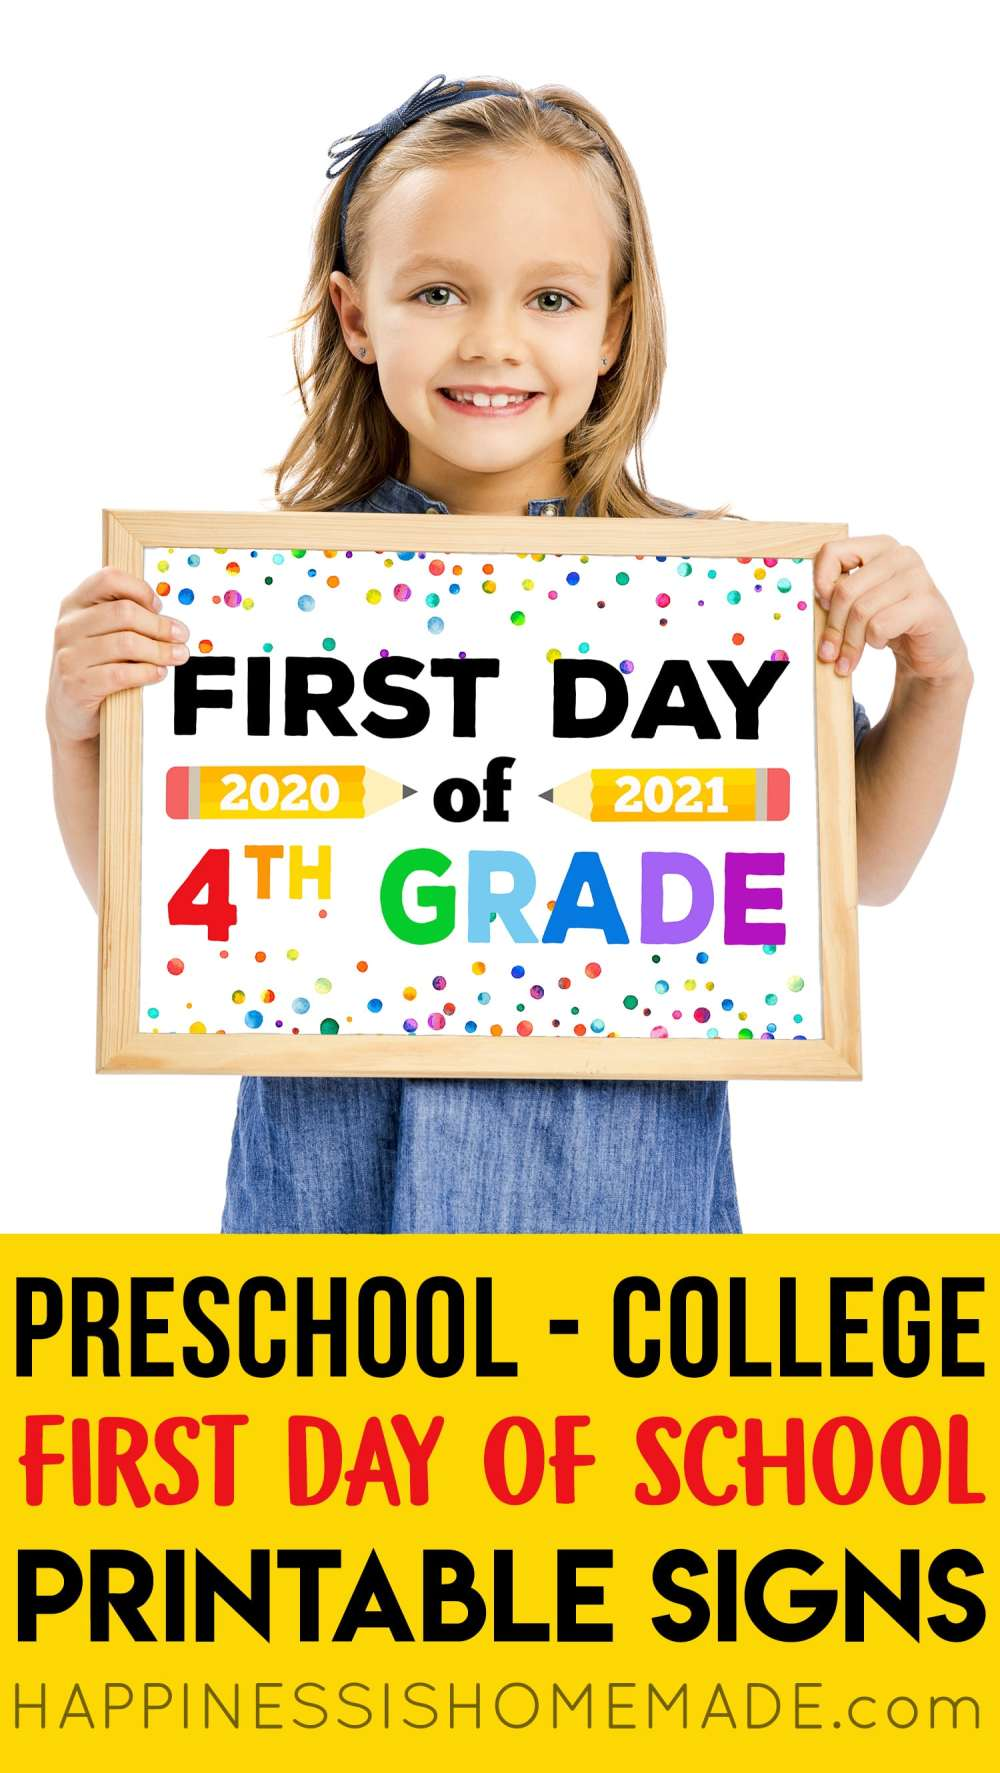 medium resolution of Free Printable First Day of School Signs 2020 - Happiness is Homemade